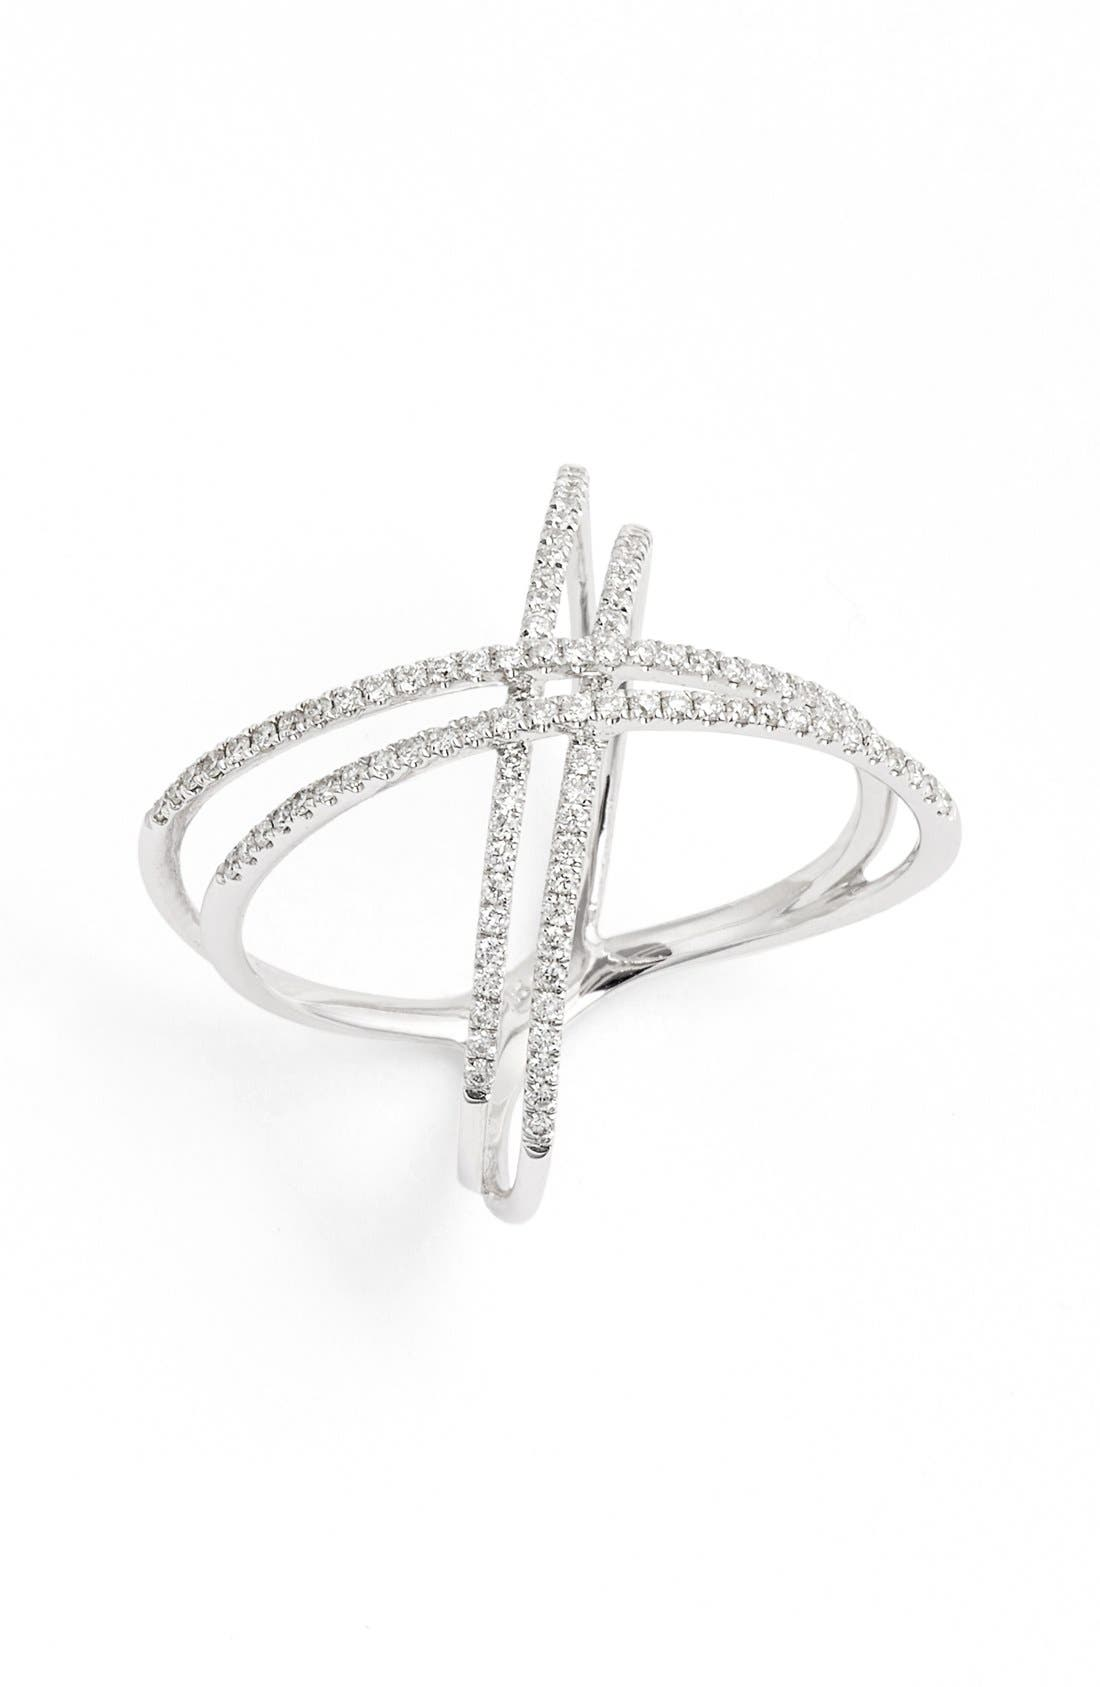 Double X Crossover Diamond Ring,                             Main thumbnail 1, color,                             WHITE GOLD